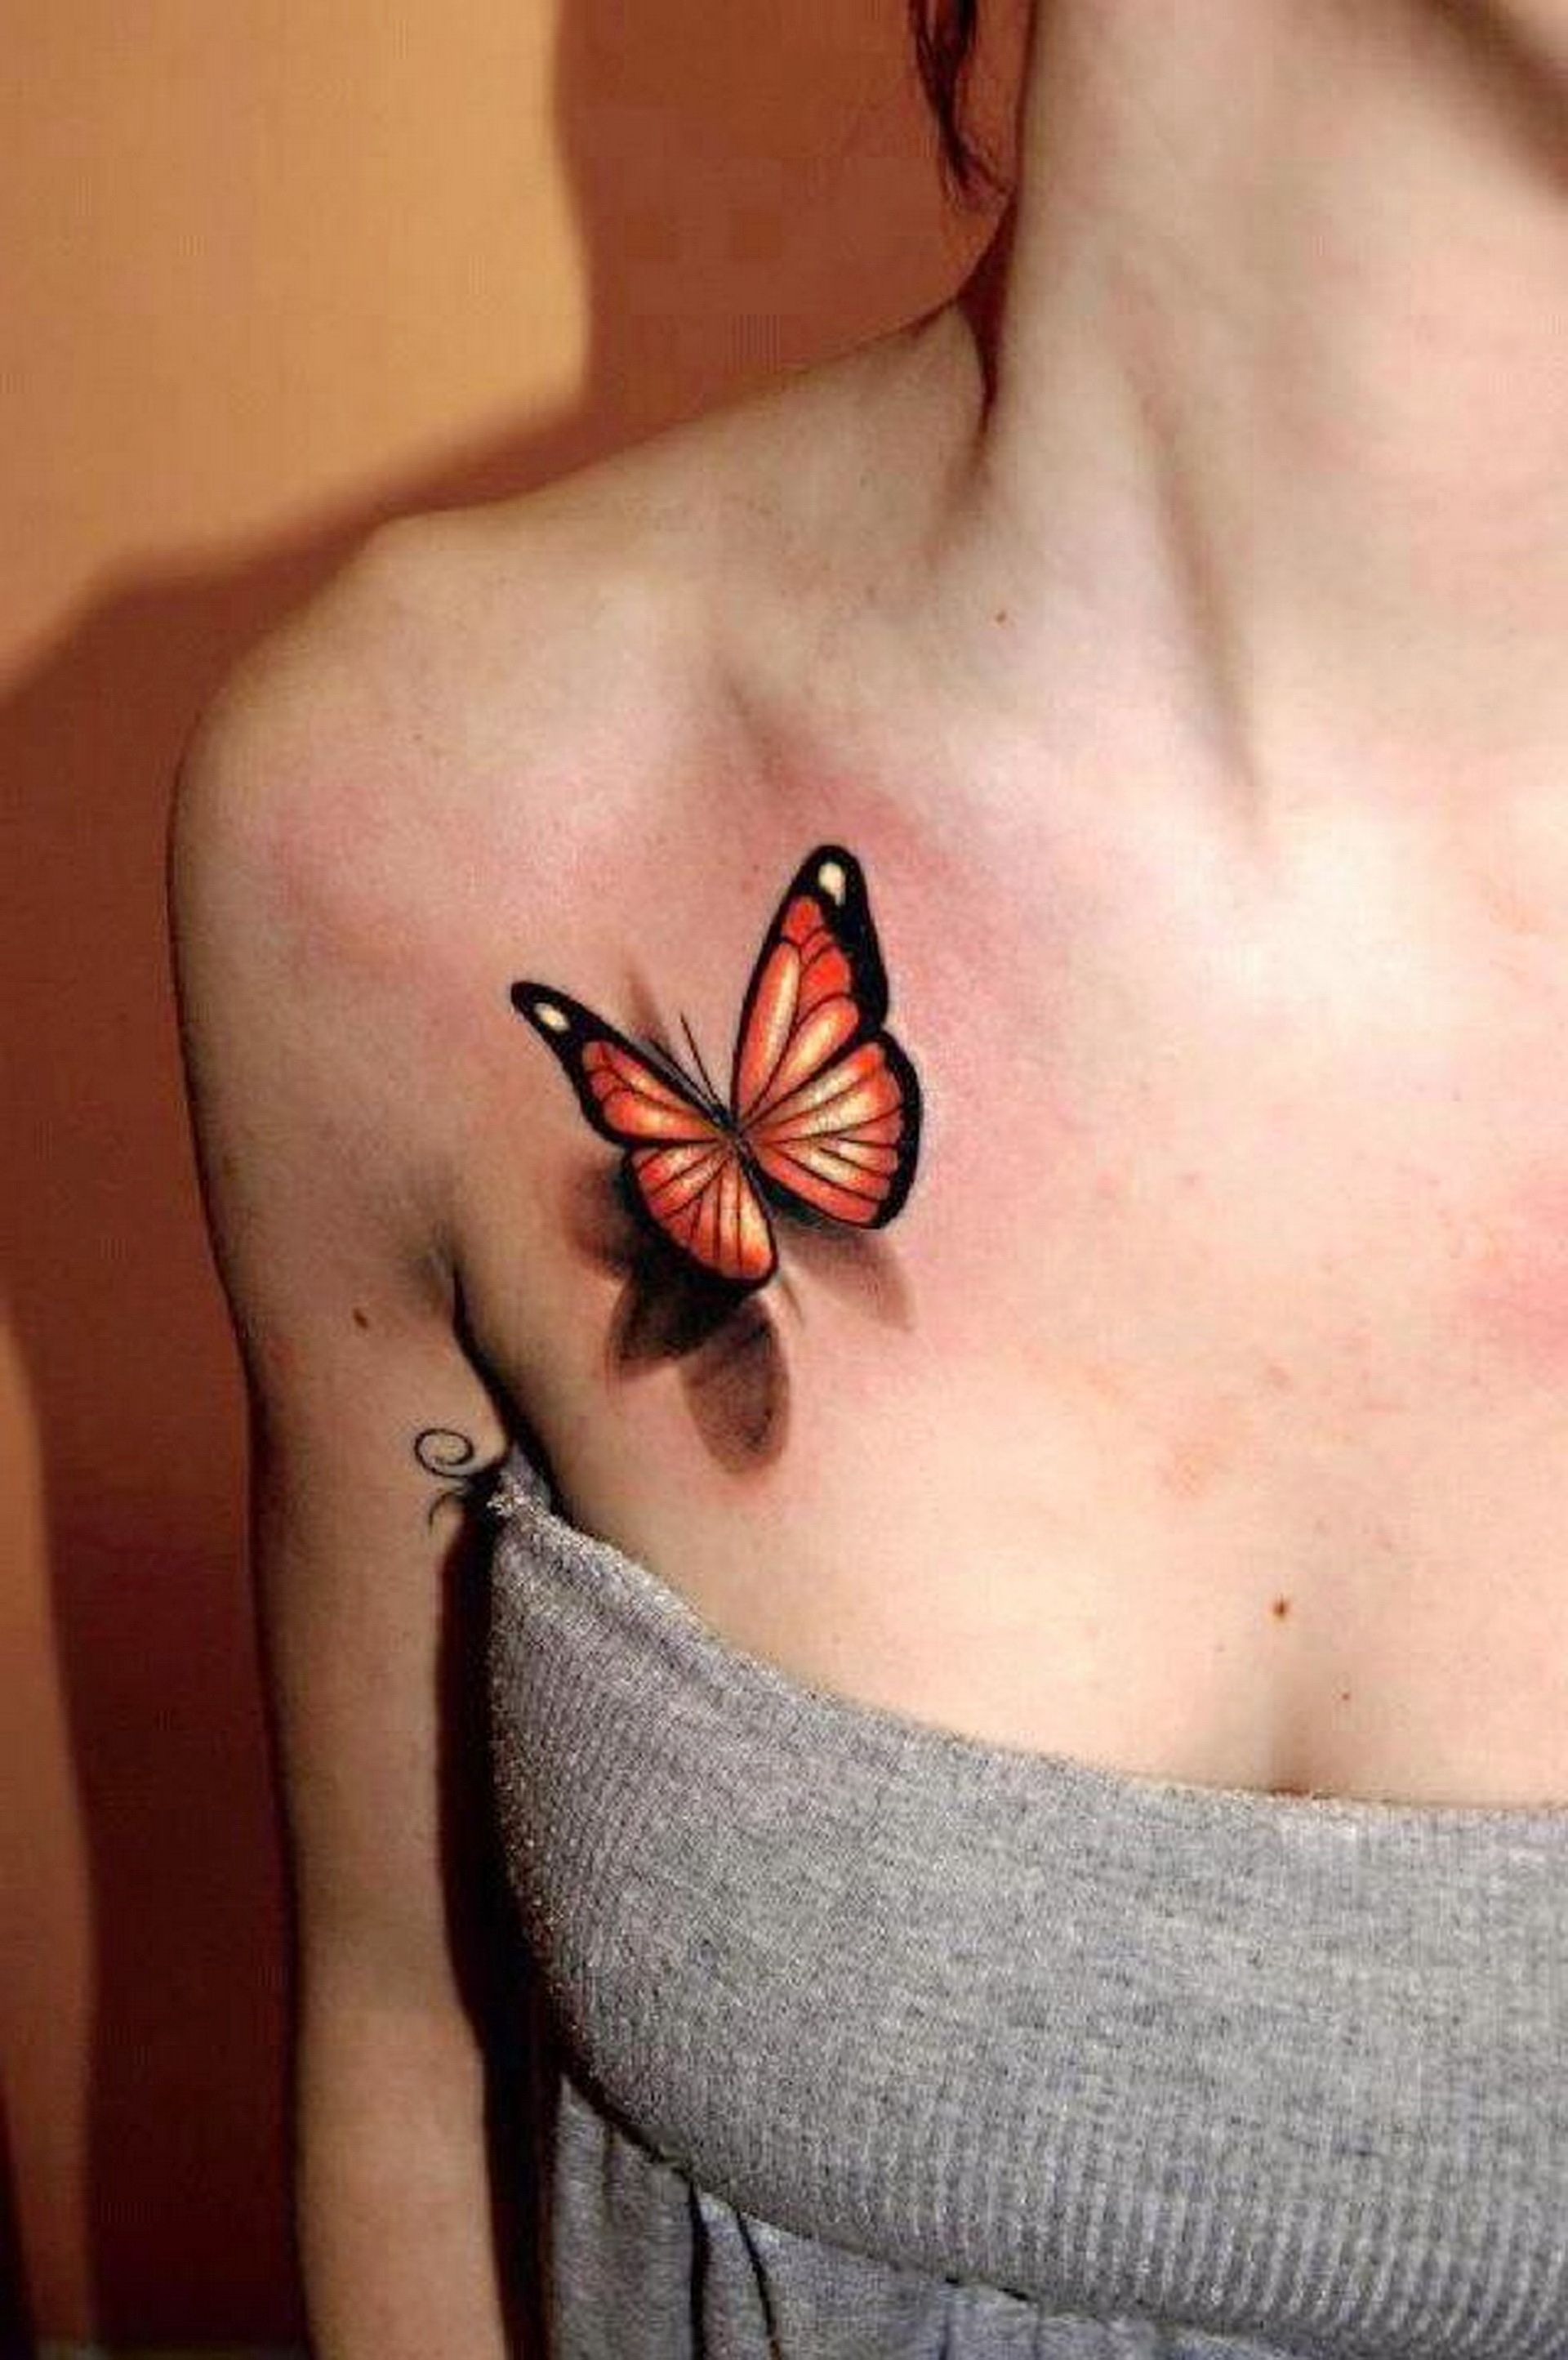 3d Tattoo Designs - Images for 3d monarch butterfly tattoos